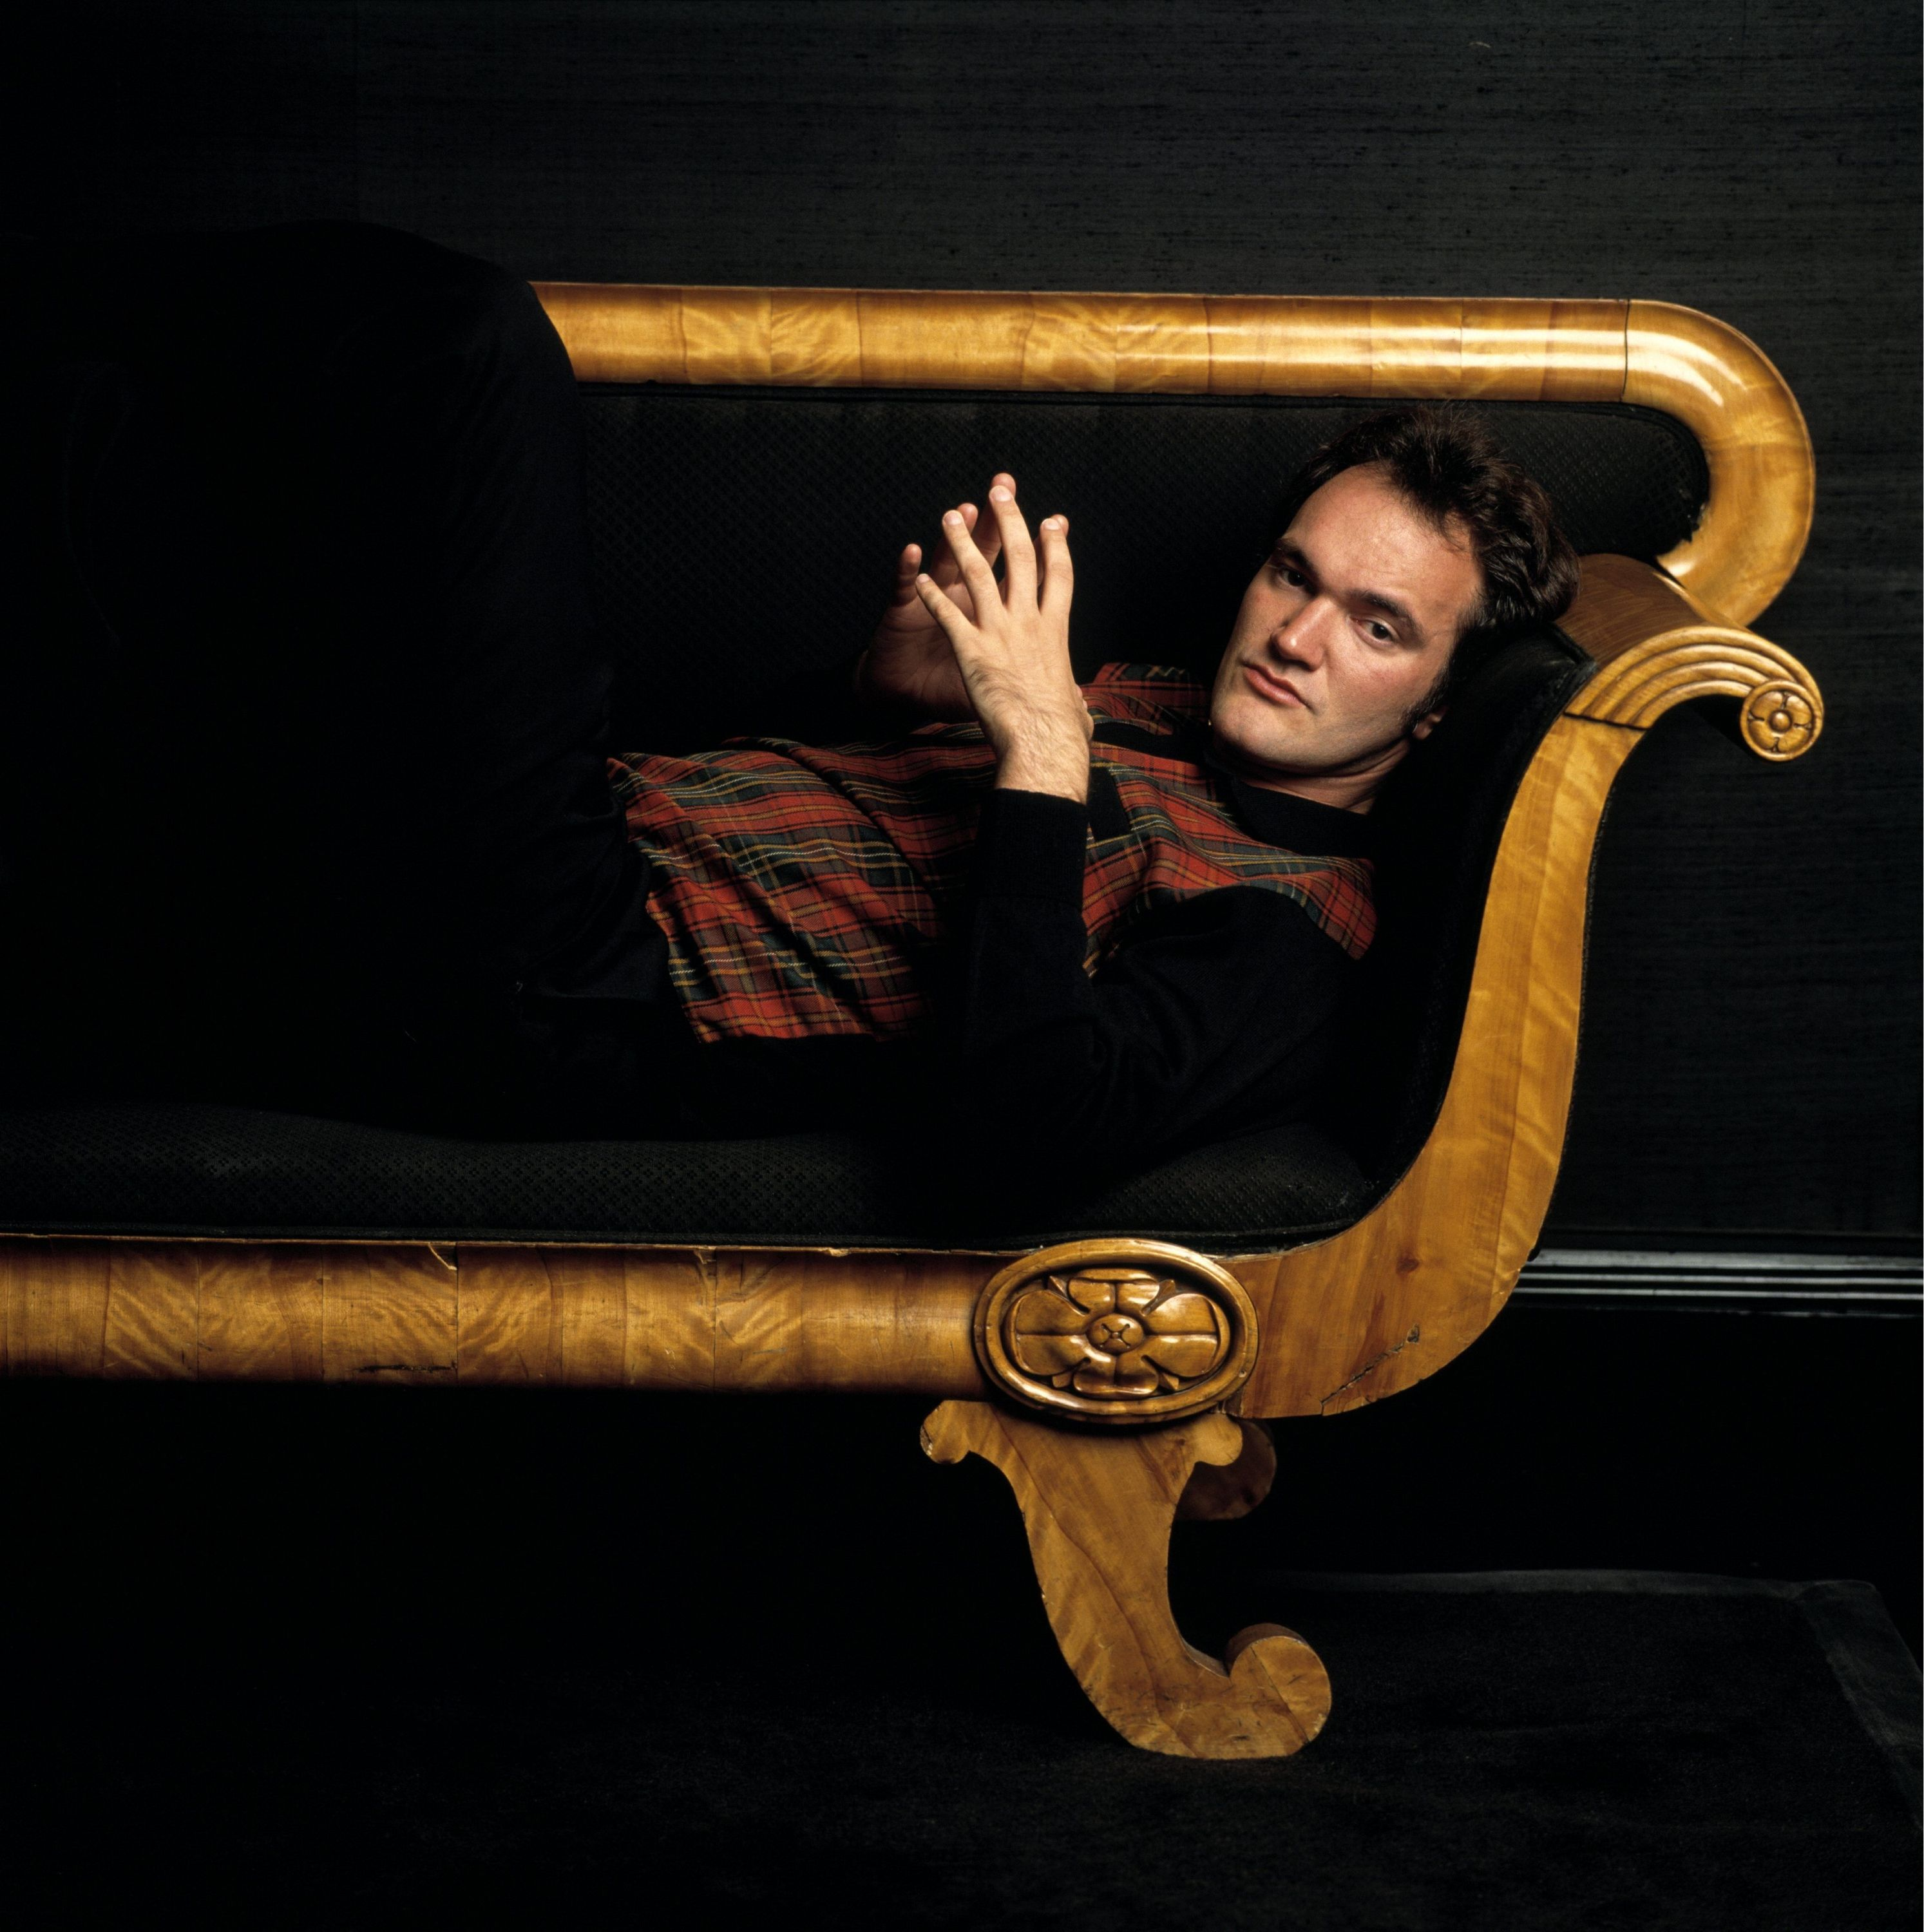 Quentin Tarantino photo, pics, wallpaper - photo #